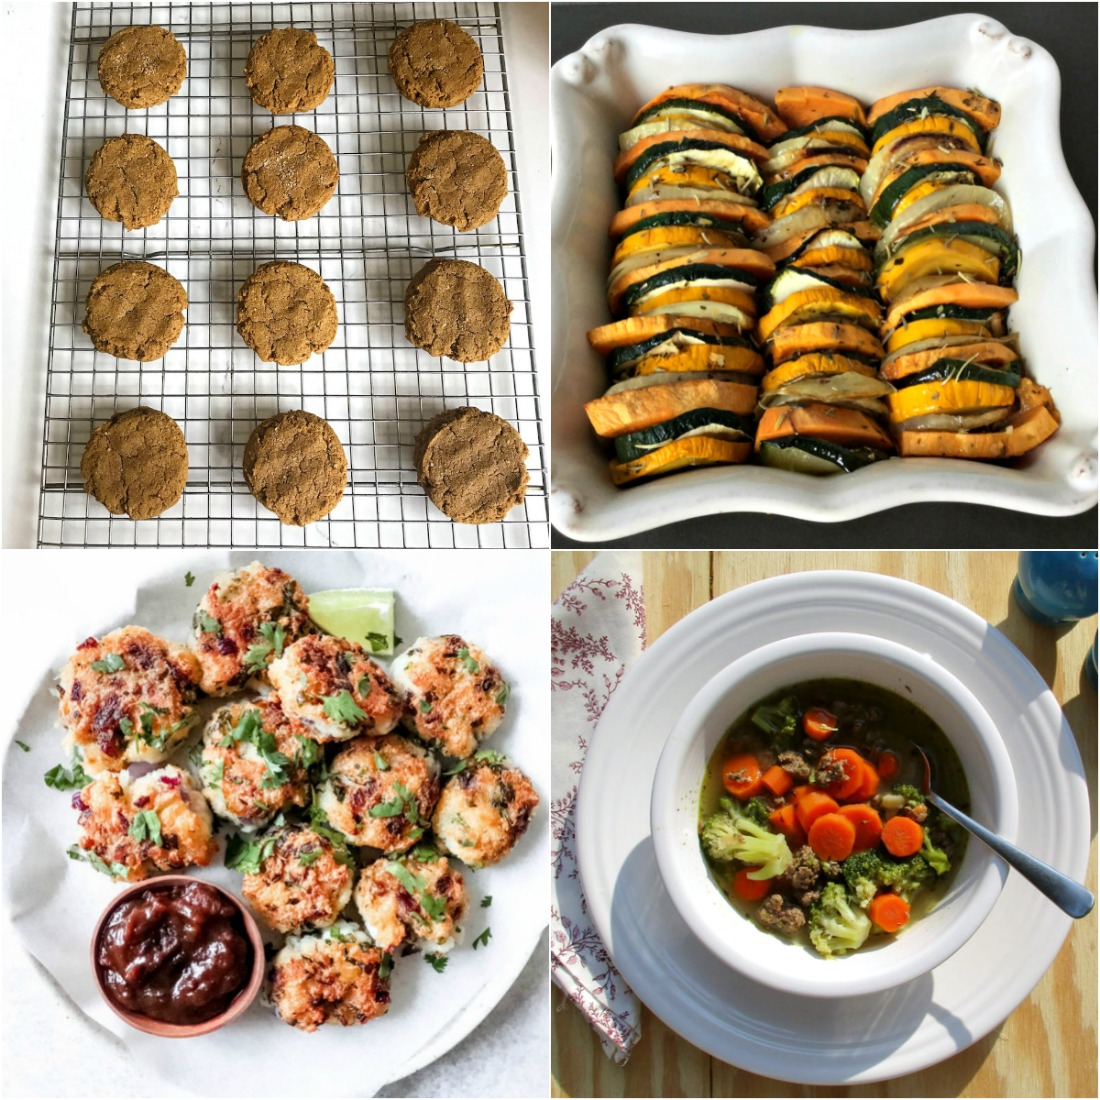 Paleo AIP Recipe Roundtable #331 | Phoenix Helix - *Featured Recipes: Ginger Molasses Cookies with Sweet Potato, Cod Fritters, Zucchini Bake, and Beef and Broccoli Soup